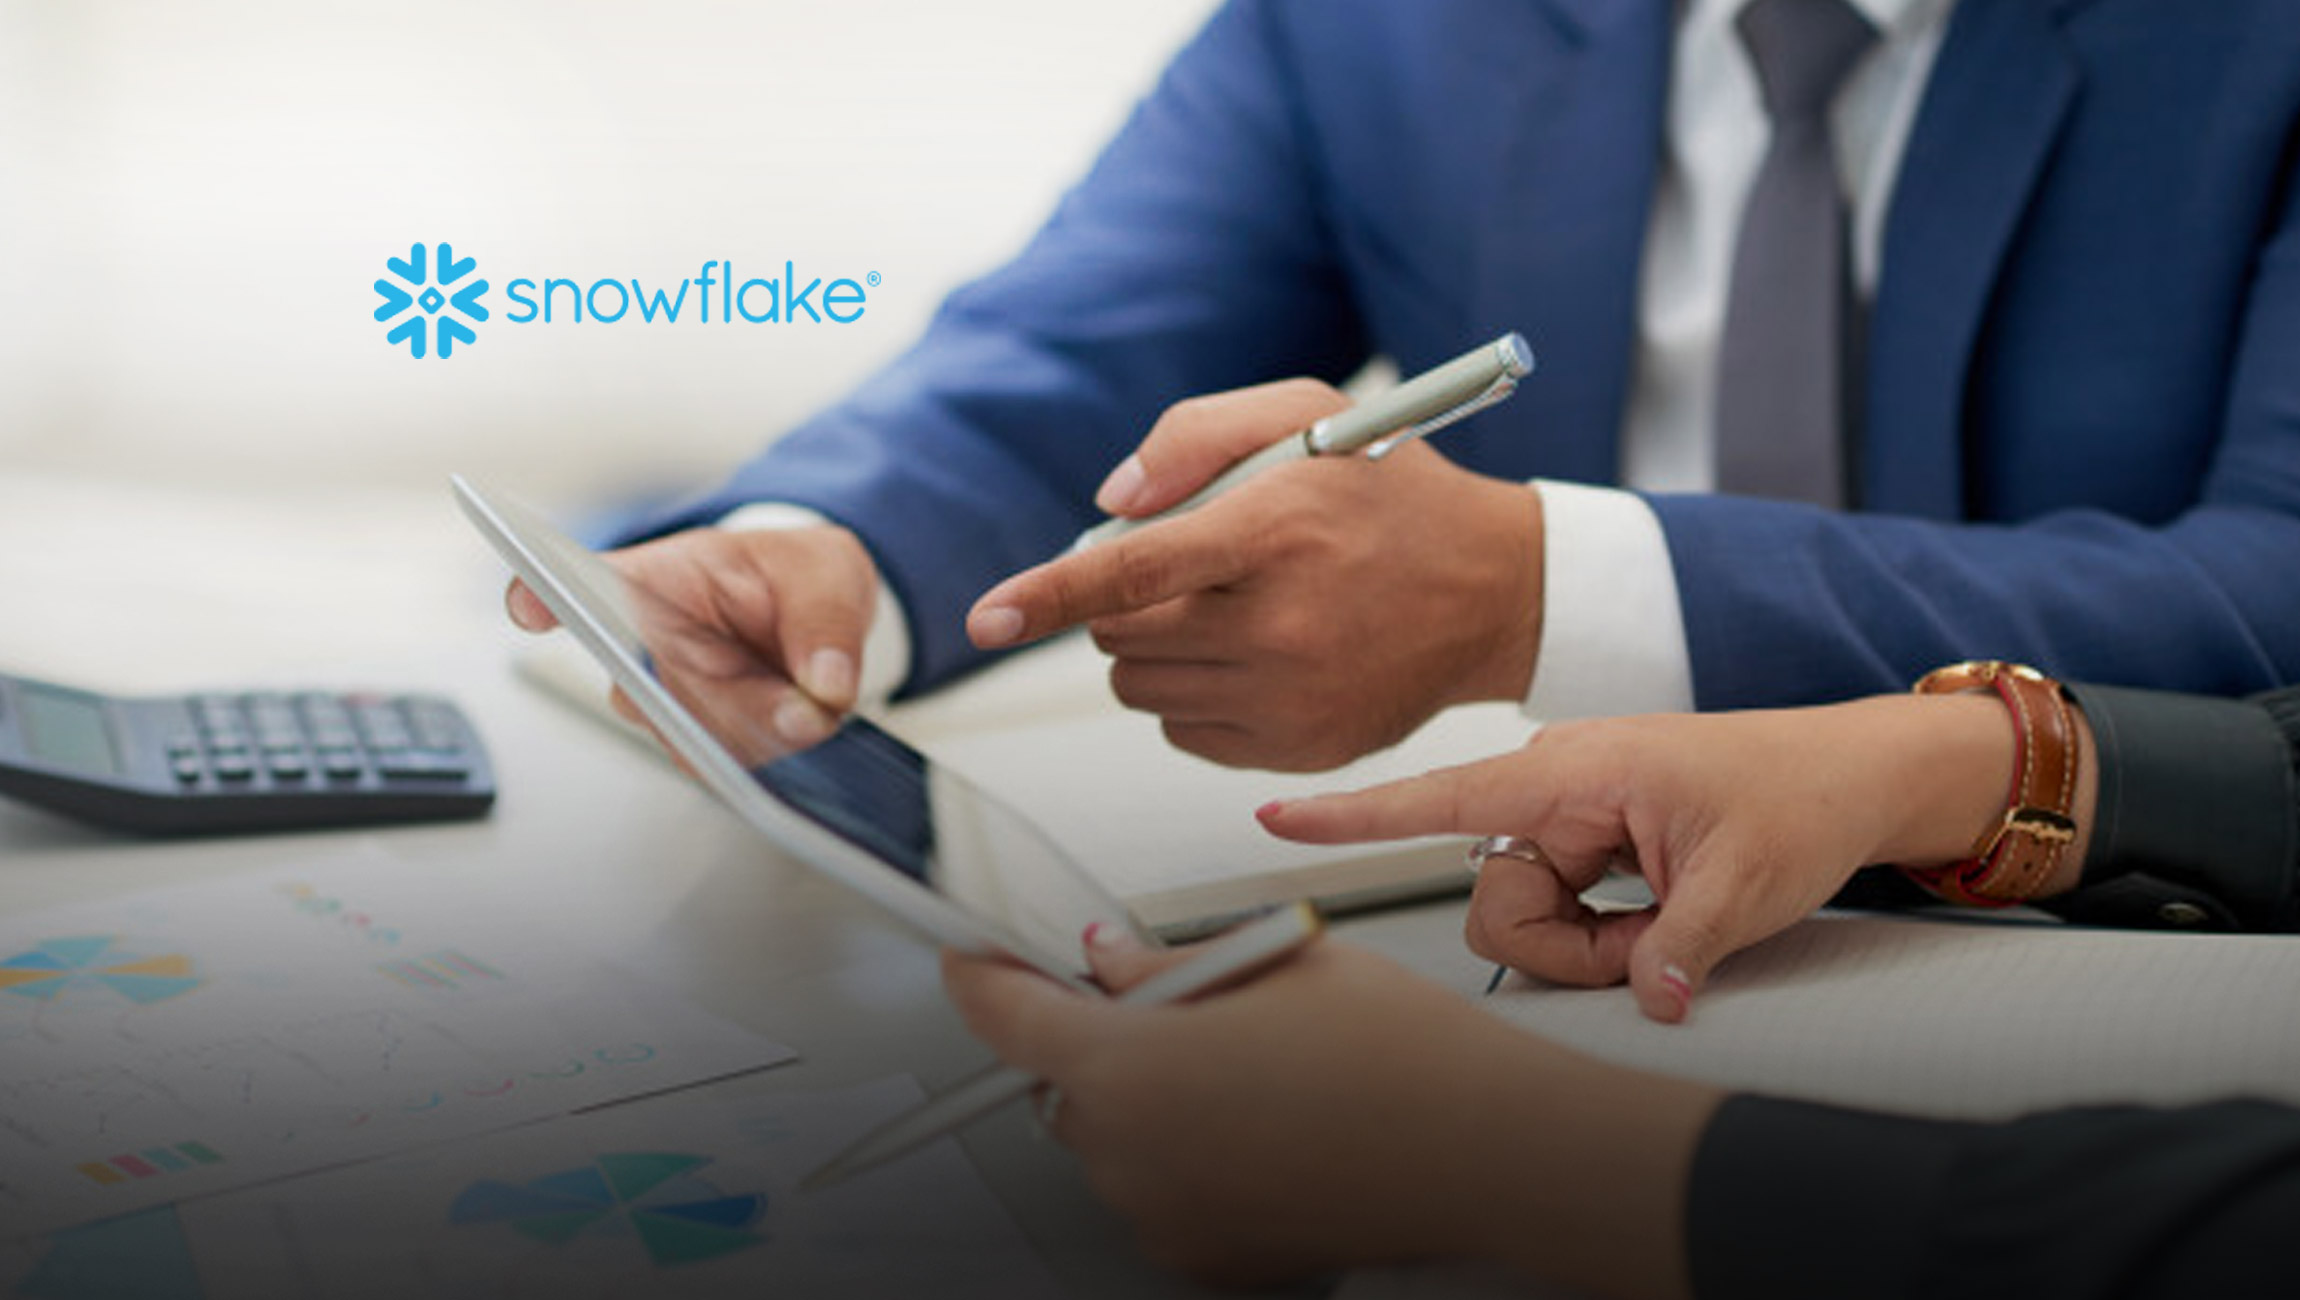 Deloitte and Snowflake Deliver a Foundation for a Modern Data Strategy